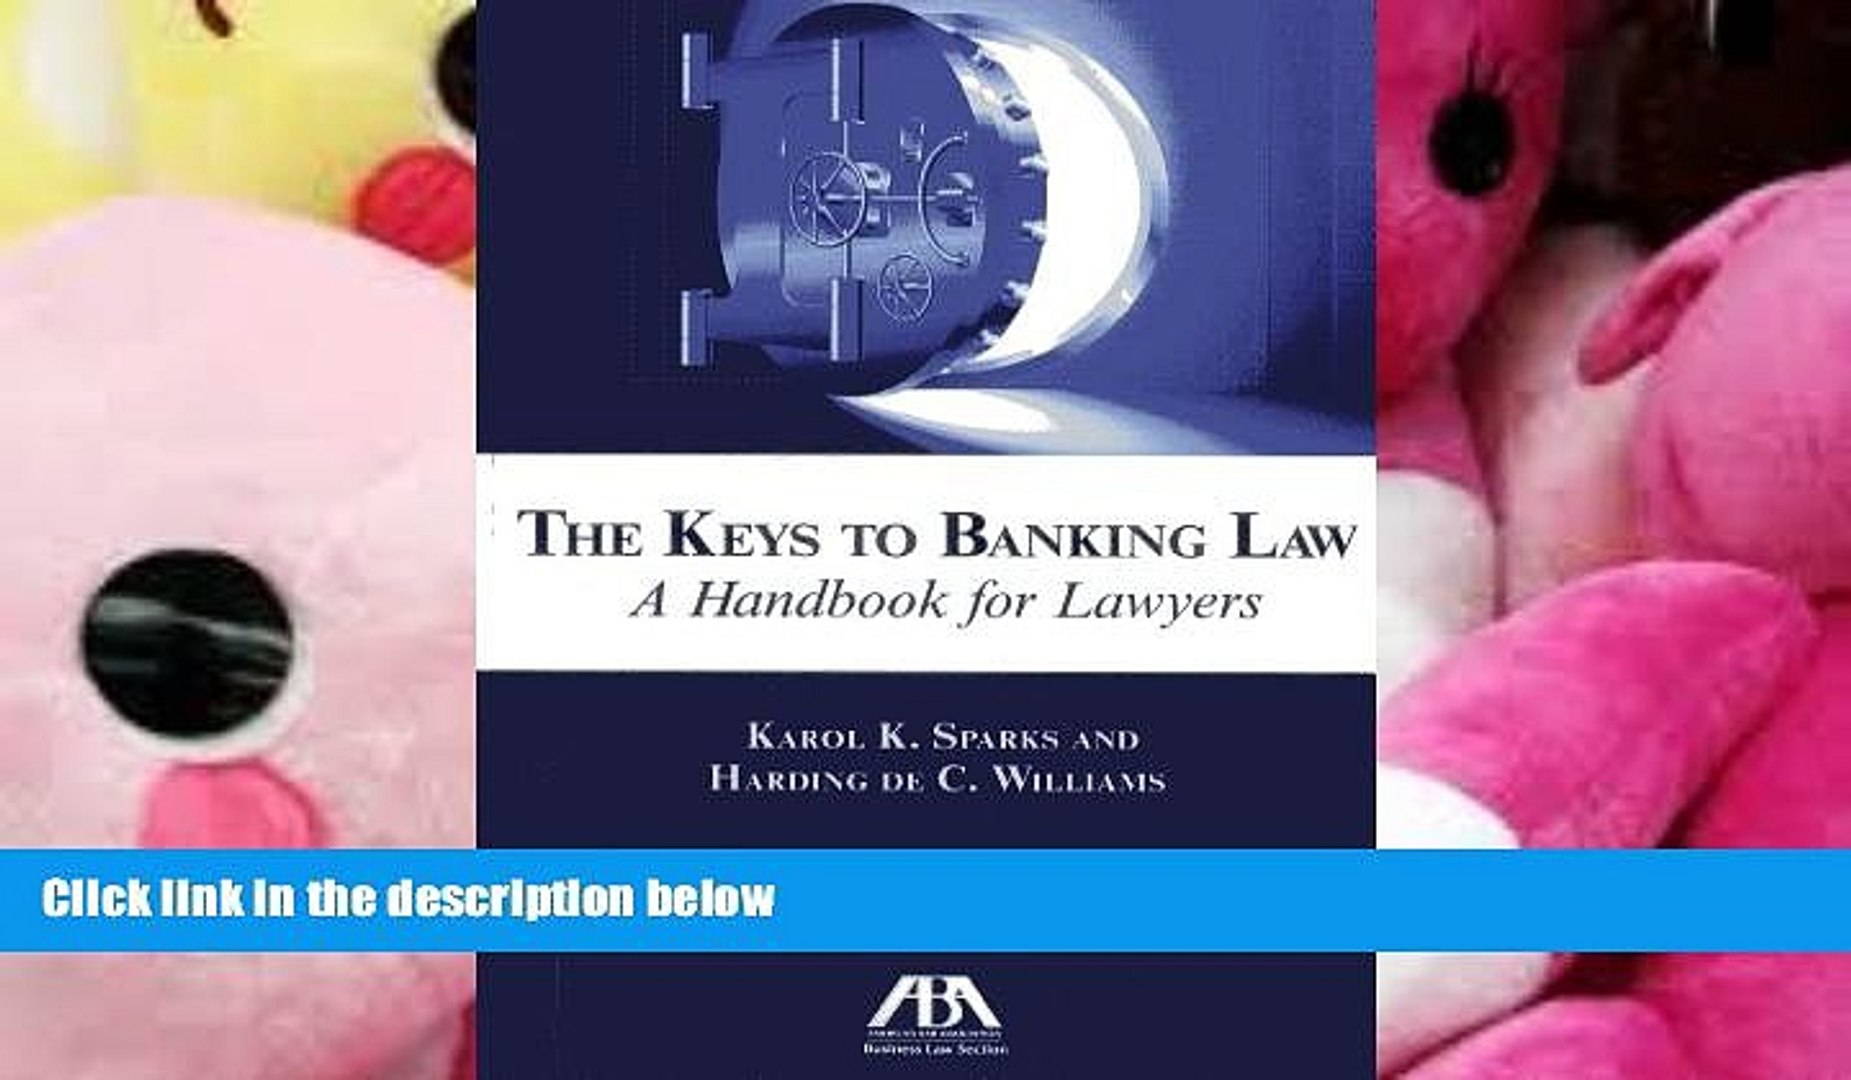 PDF [DOWNLOAD] The Keys to Banking Law: A Handbook for Lawyers READ ONLINE